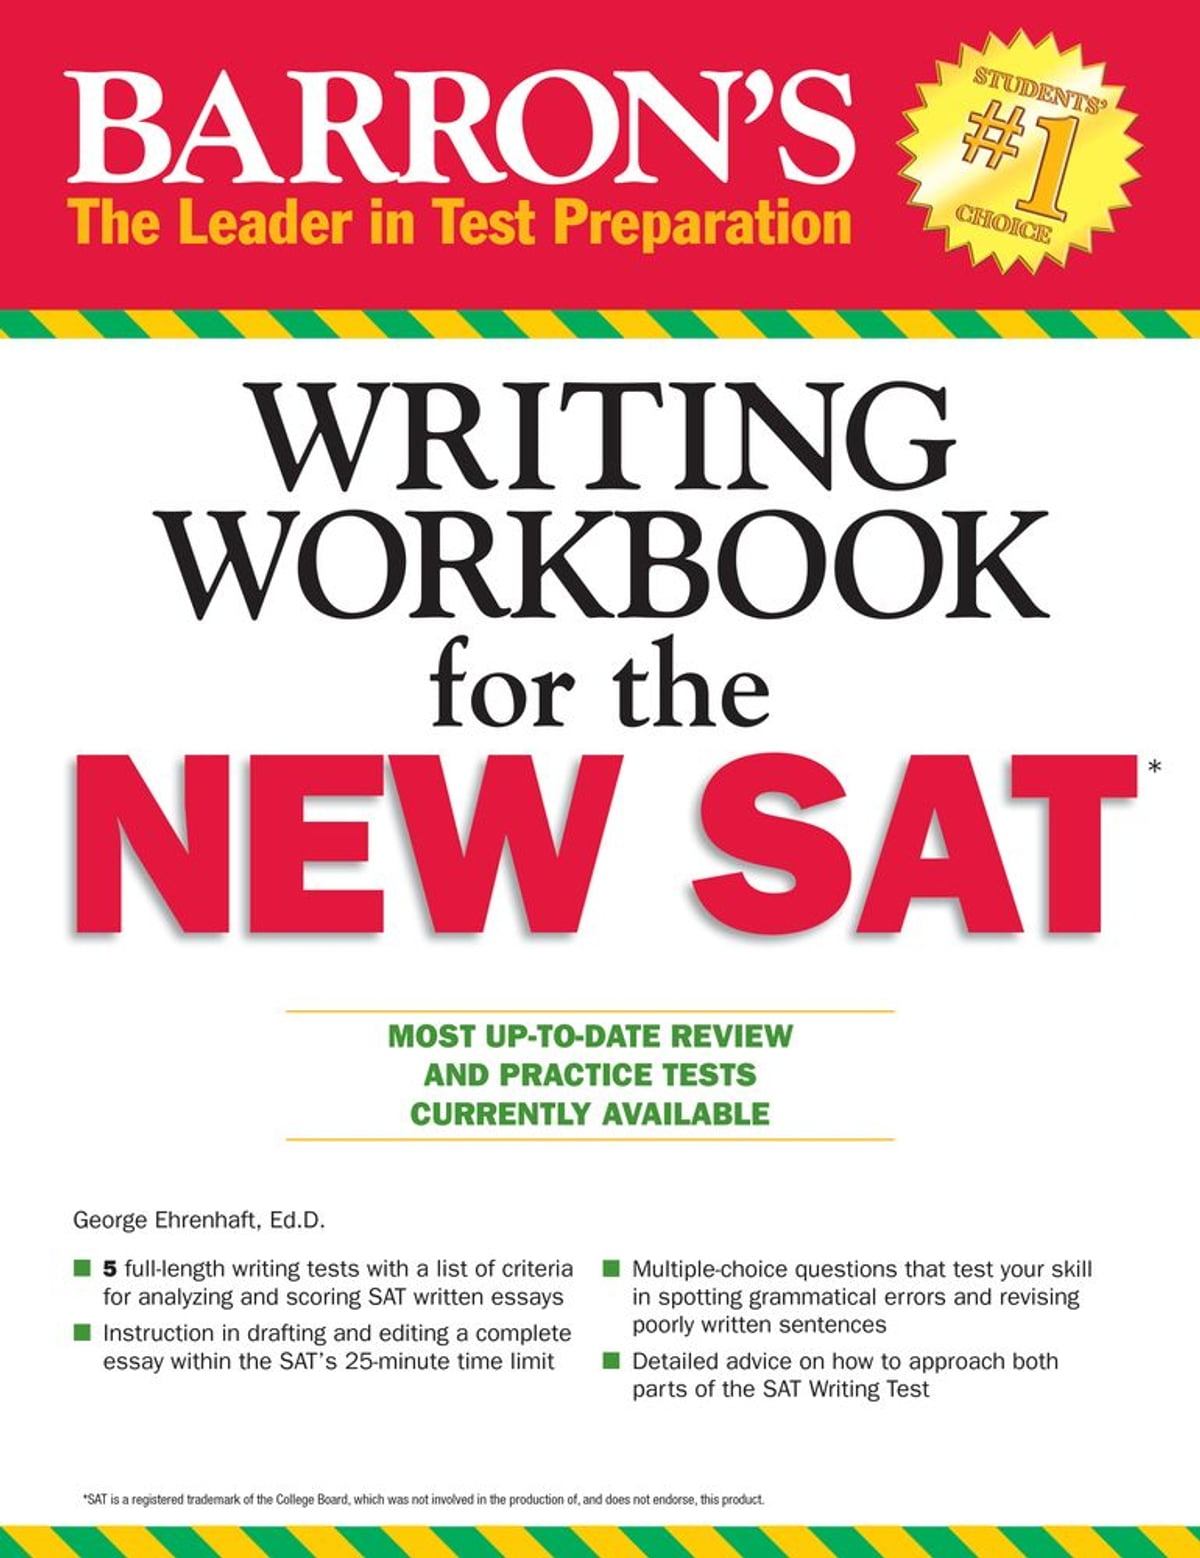 Workbooks kaplan sat critical reading workbook : Writing Workbook for the New SAT eBook by George Ehrenhaft Ed.D ...